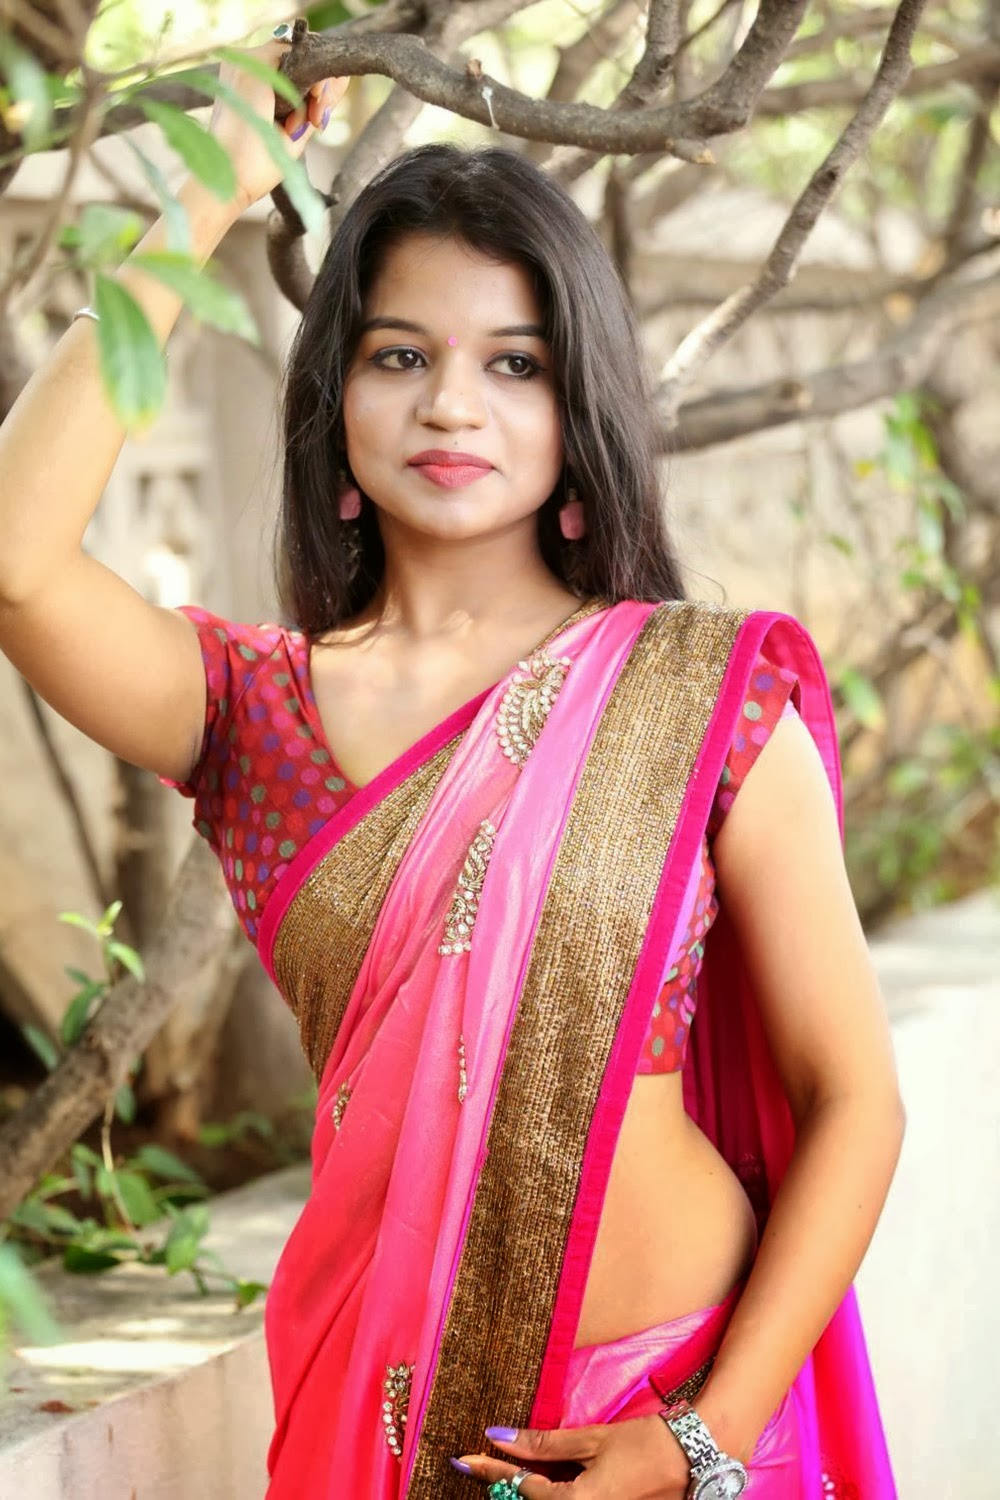 Telugu Actress Bhavya Sris Most Sexiest Navel Showing Images-Hot Boob Cleavage Unseen -8872